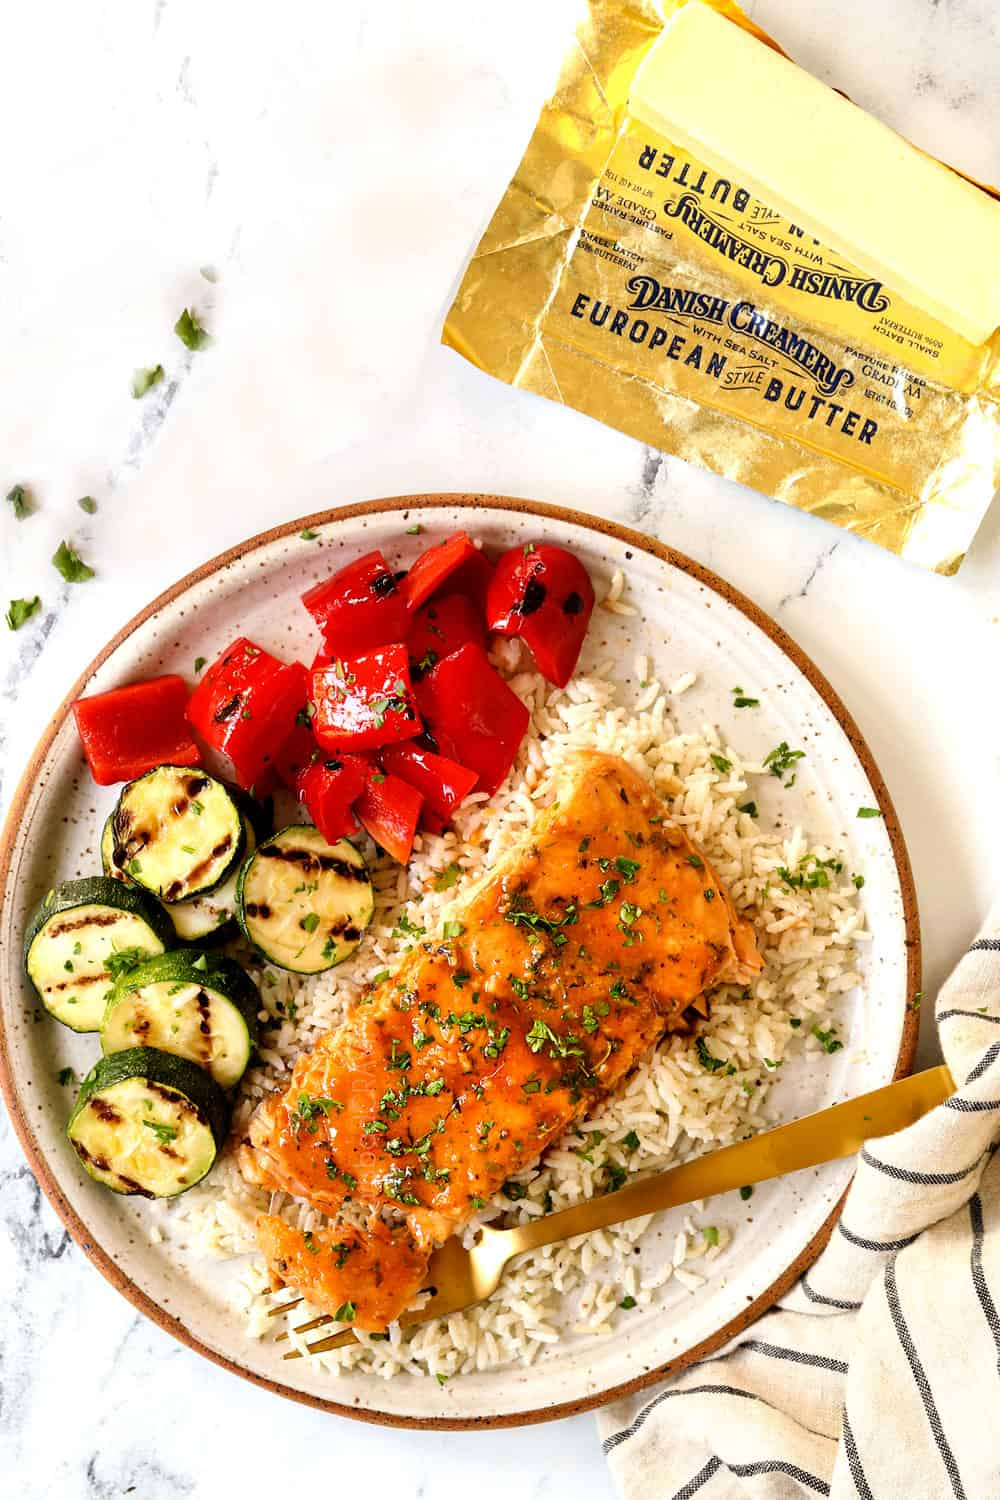 grilled salmon in foil on a plate with rice and vegetables